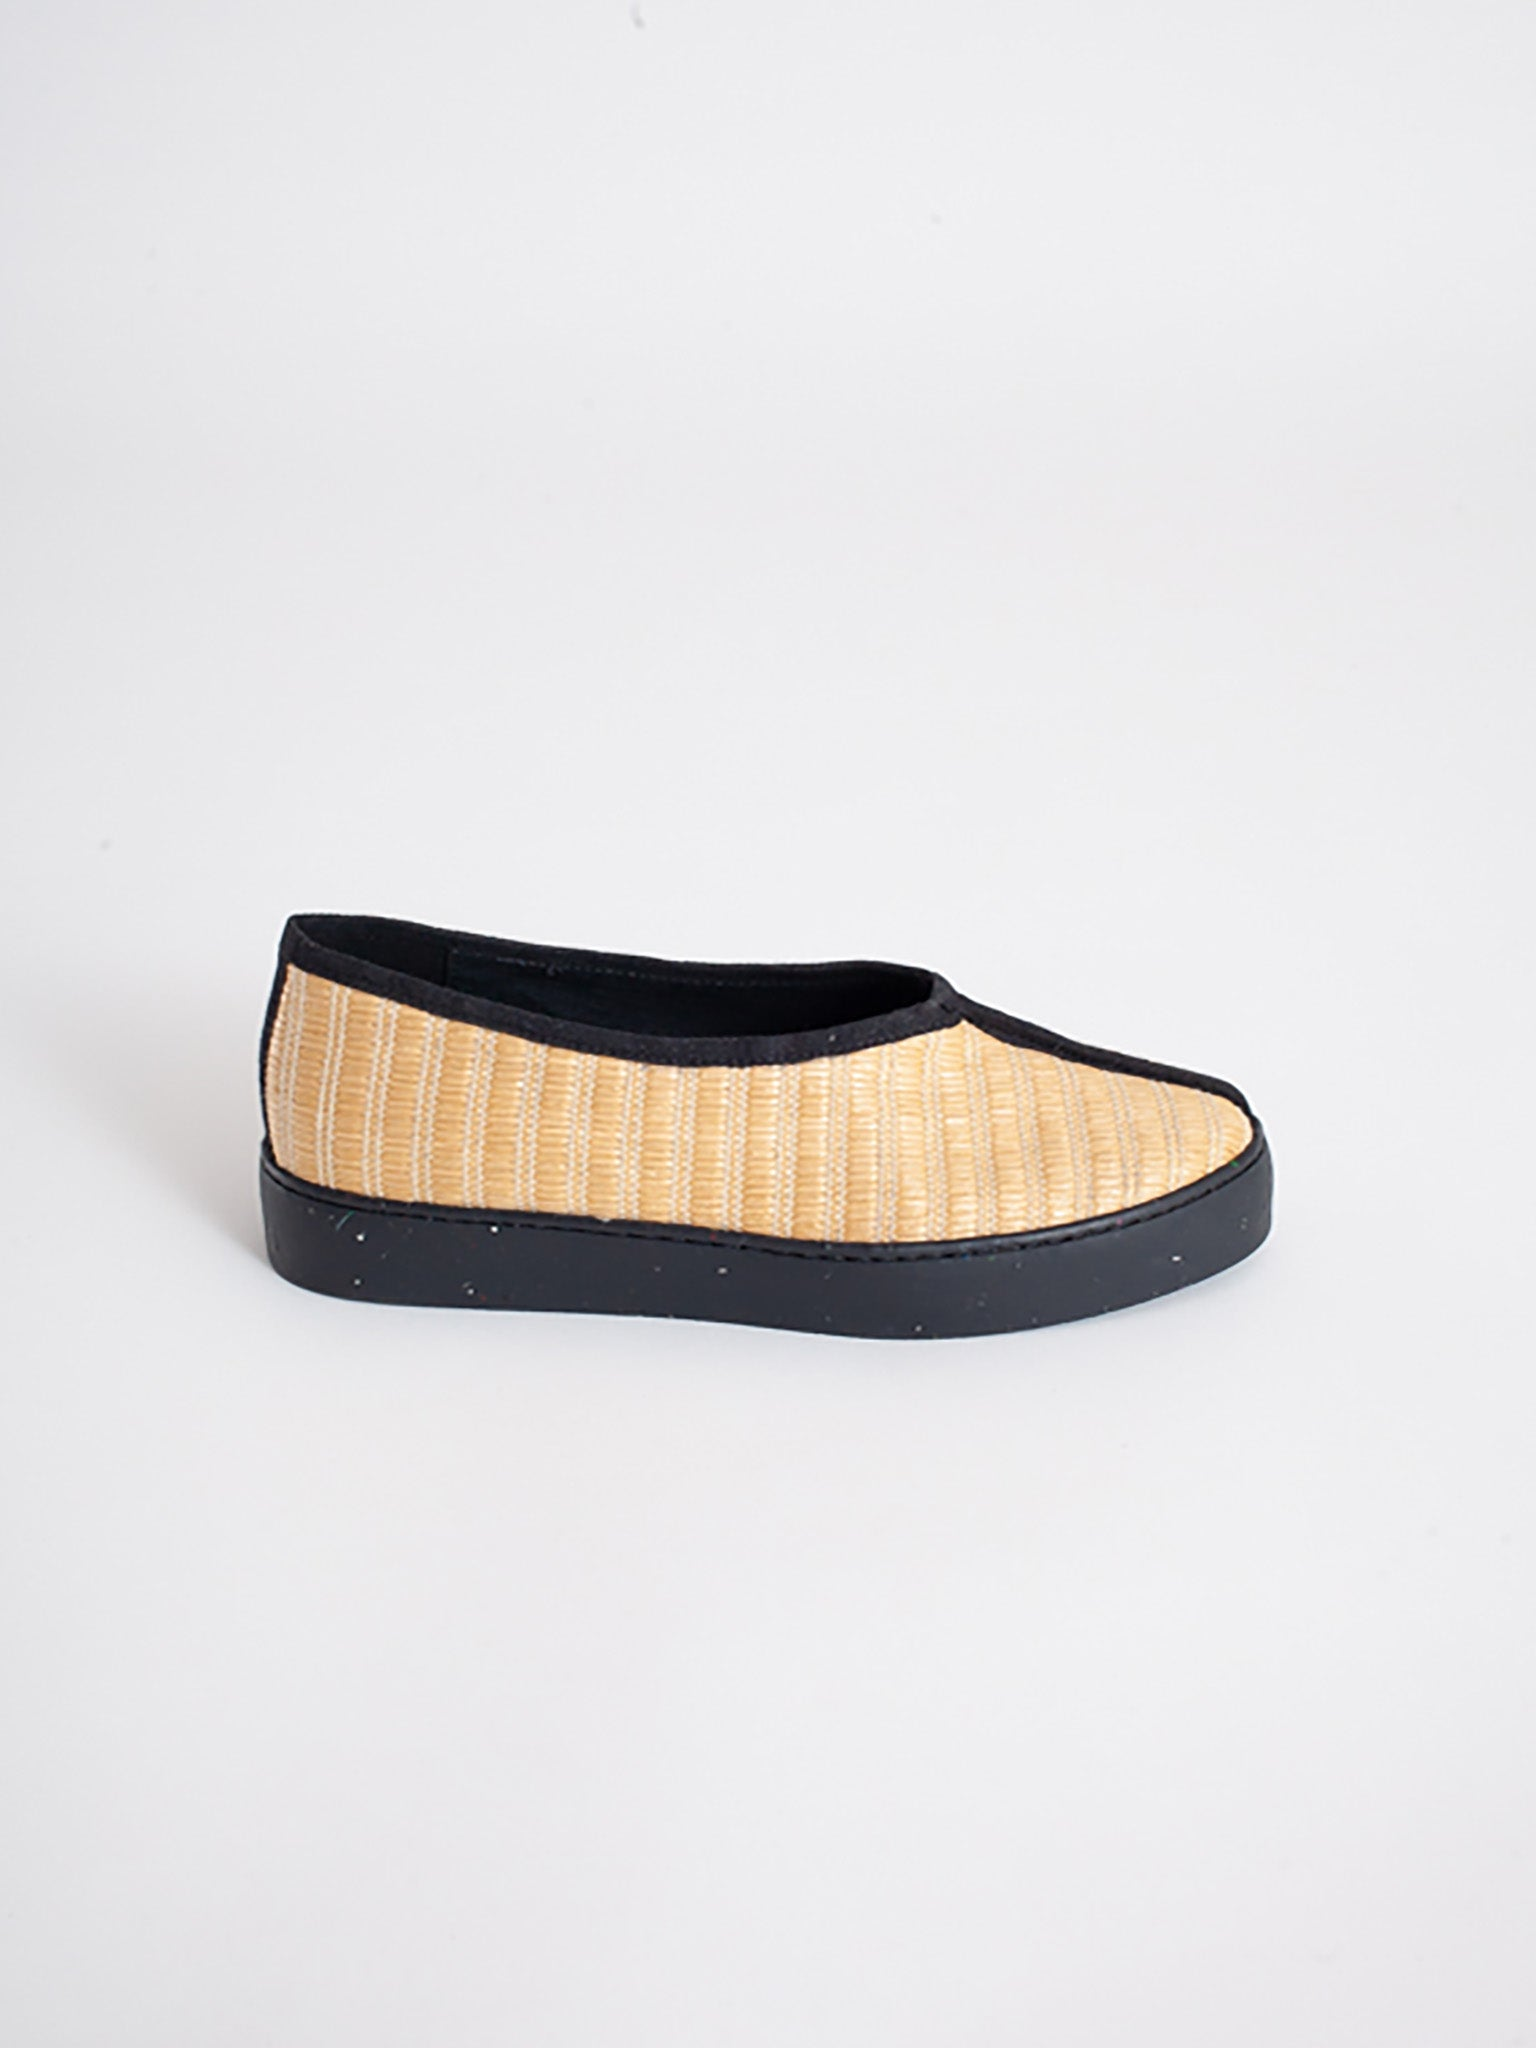 Reality_Studio_Ming_Slipons_Tatami_Natural